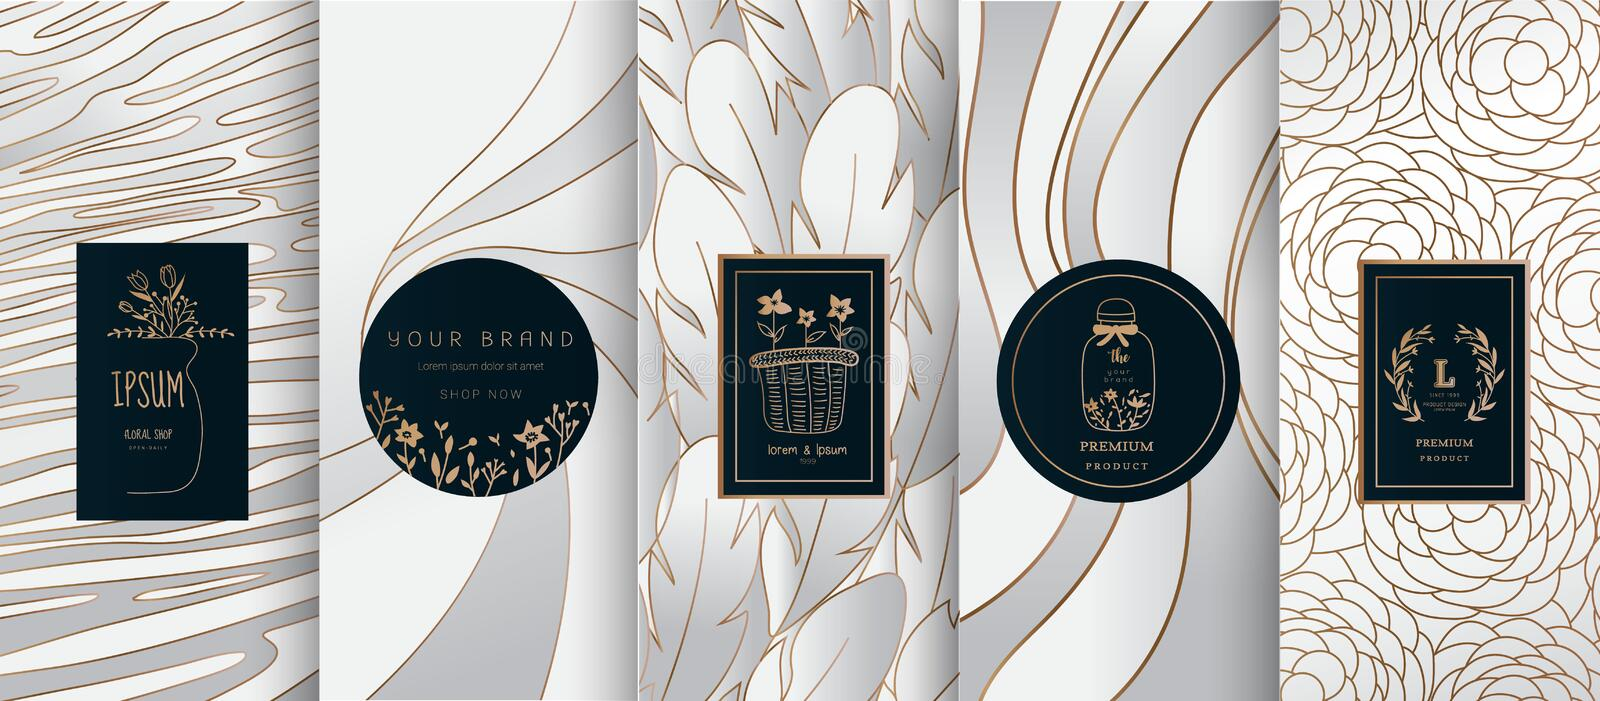 Collection of design elements,labels,icon,frames, for logo,packaging,design of luxury products.for perfume,soap,wine, lotion. Made with Isolated on black stock illustration